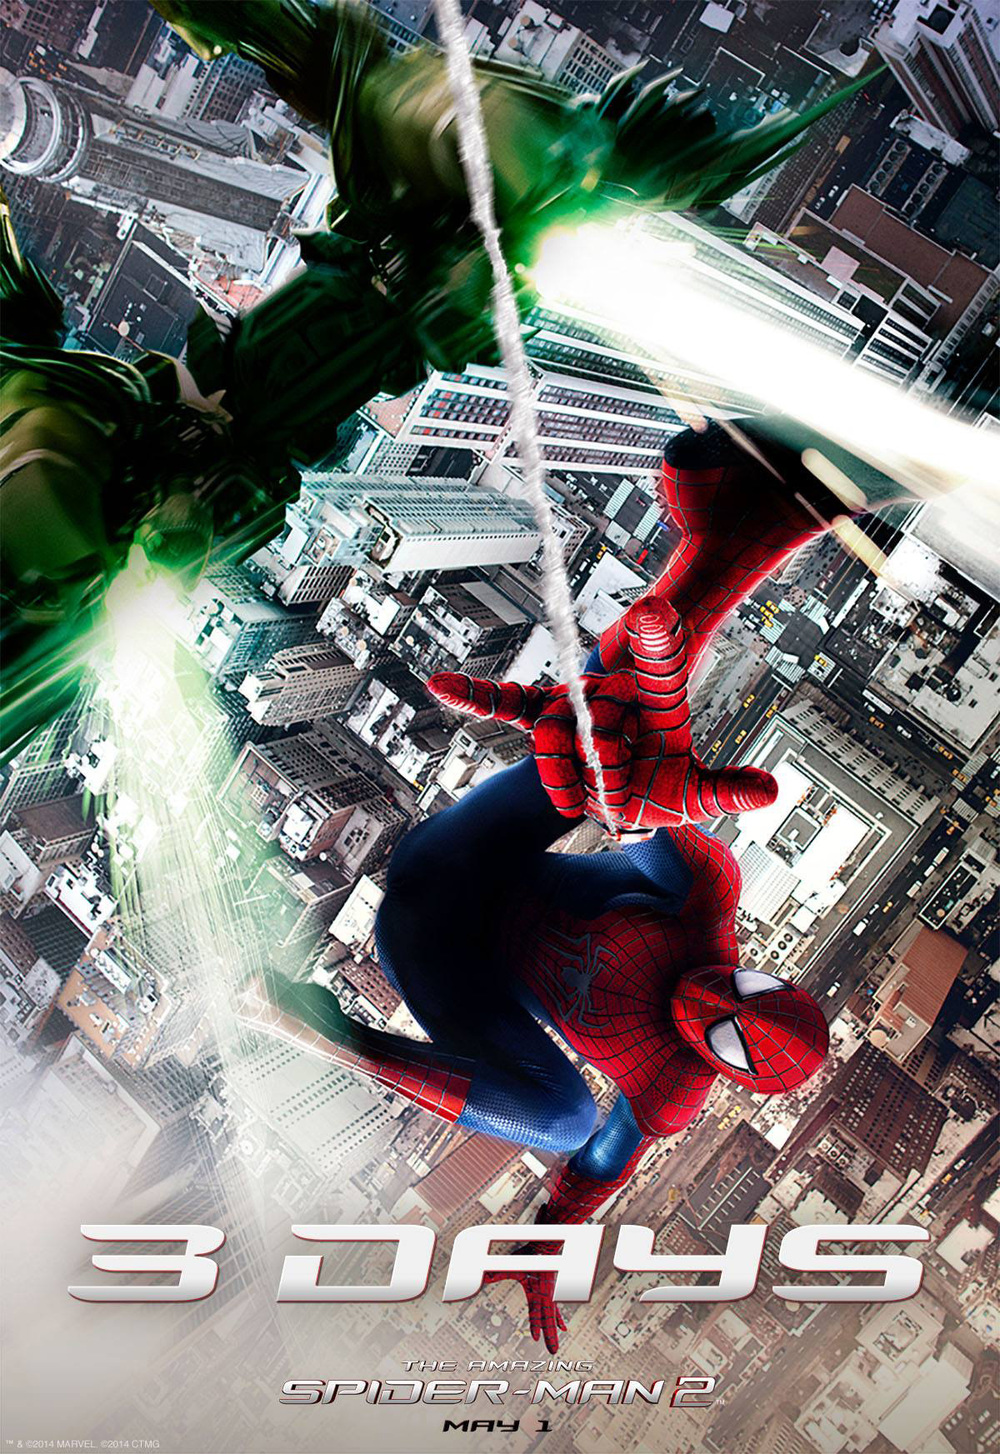 spidey-vs-green-goblin-in-amazing-spider-man-2-promo-photo